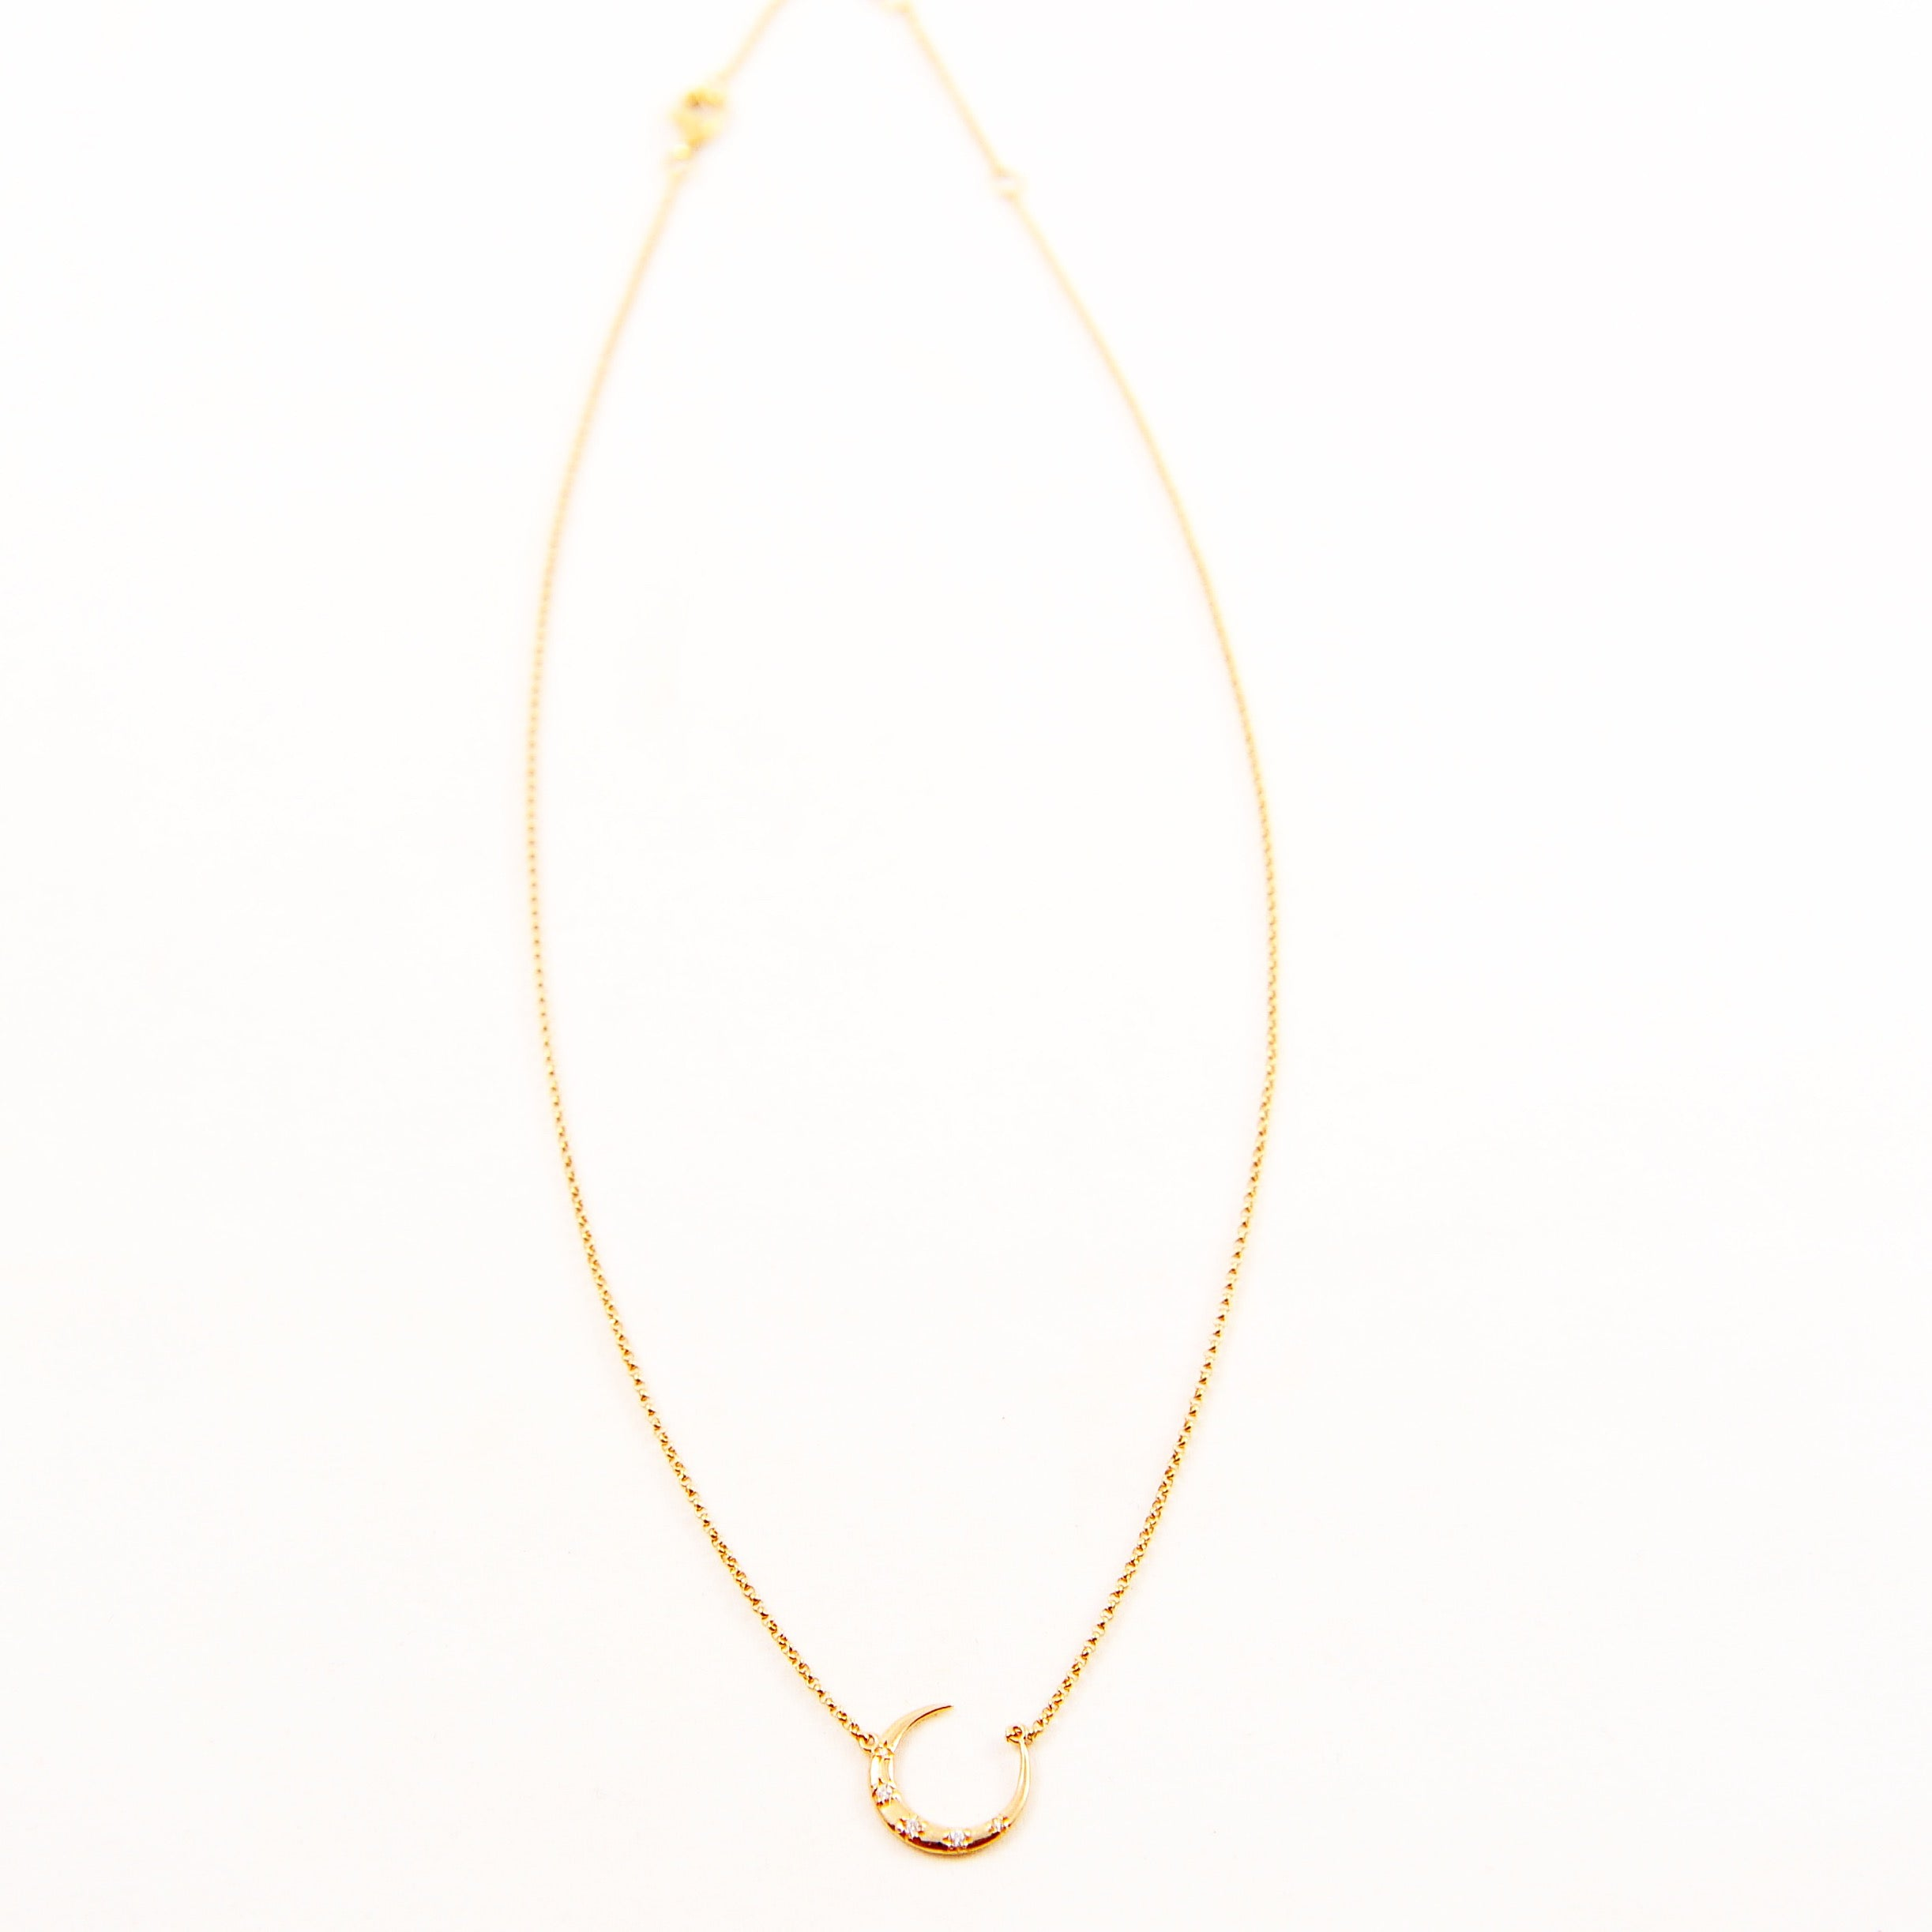 DIAMOND CRESCENT MOON CHOKER